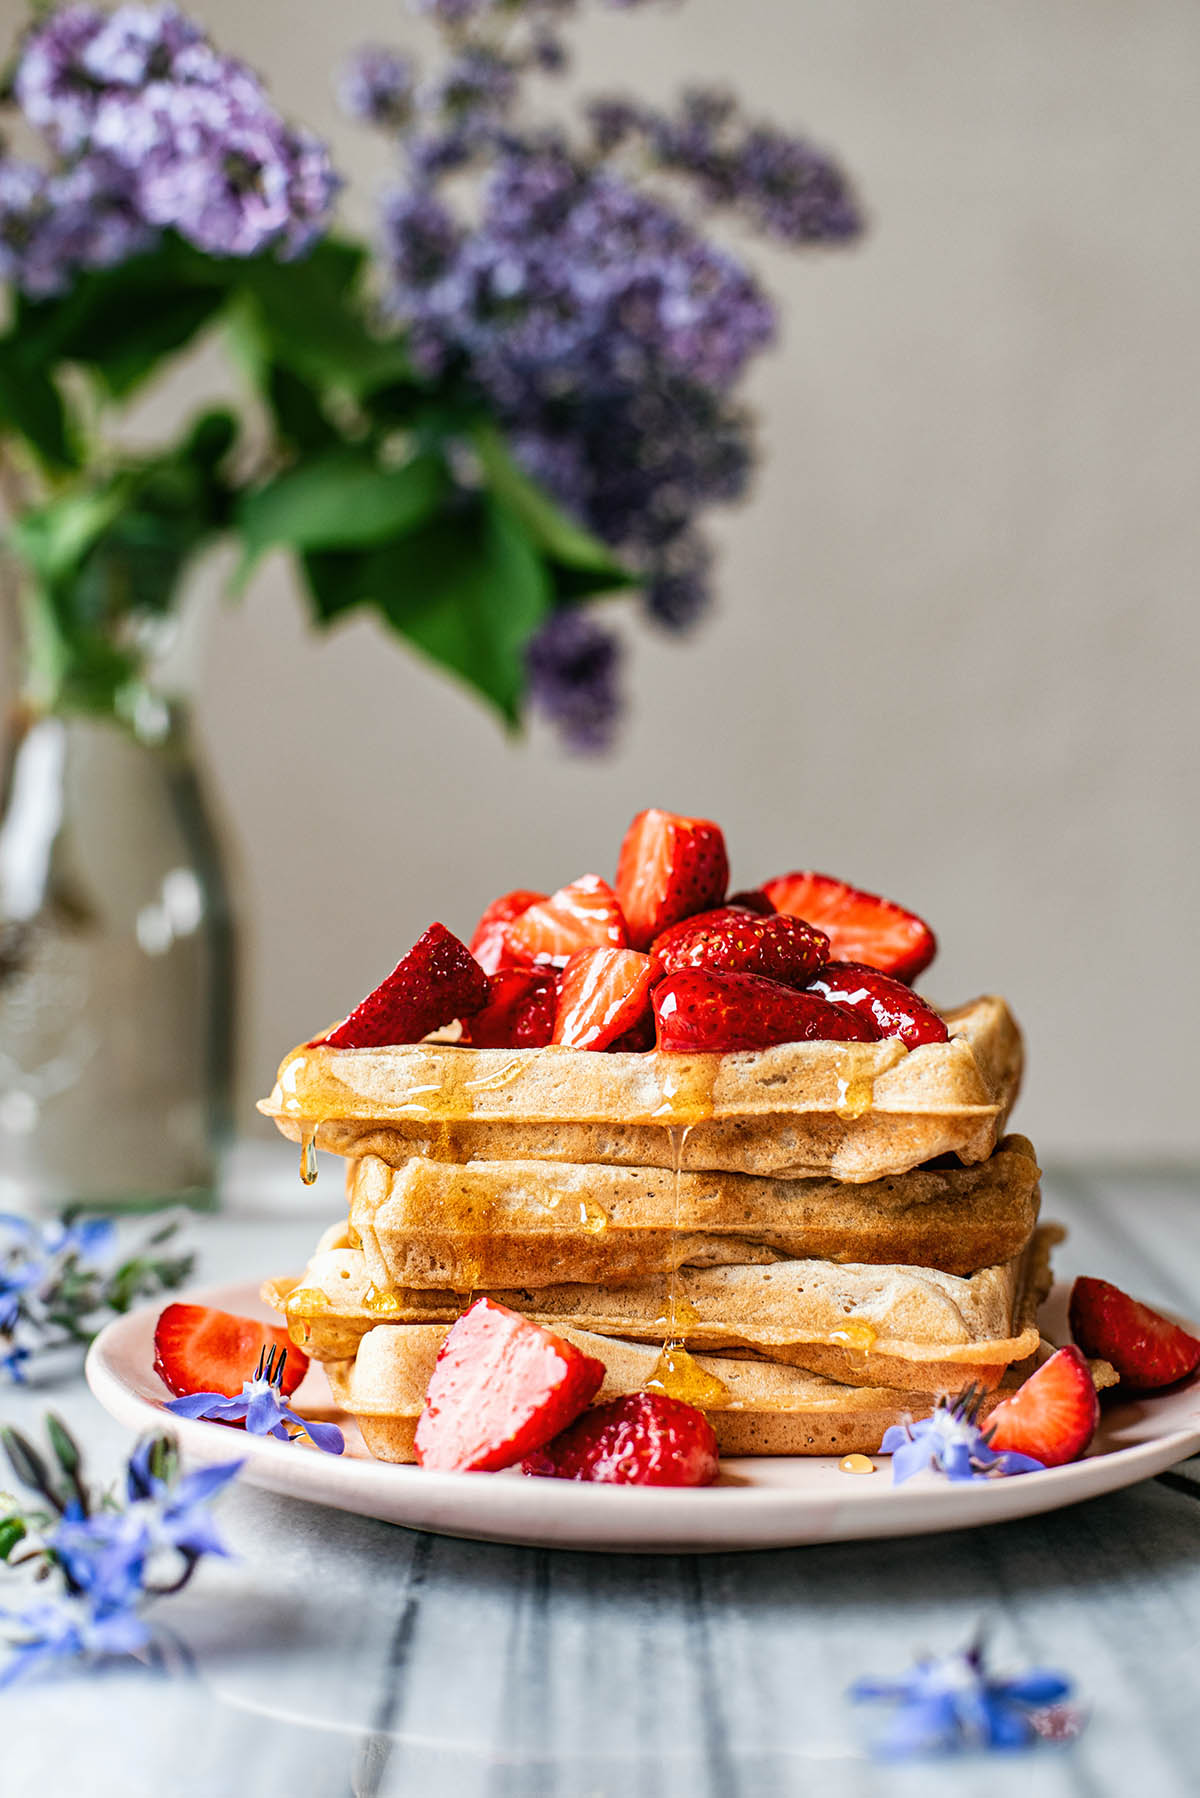 Stack of sourdough waffles topped with strawberries.